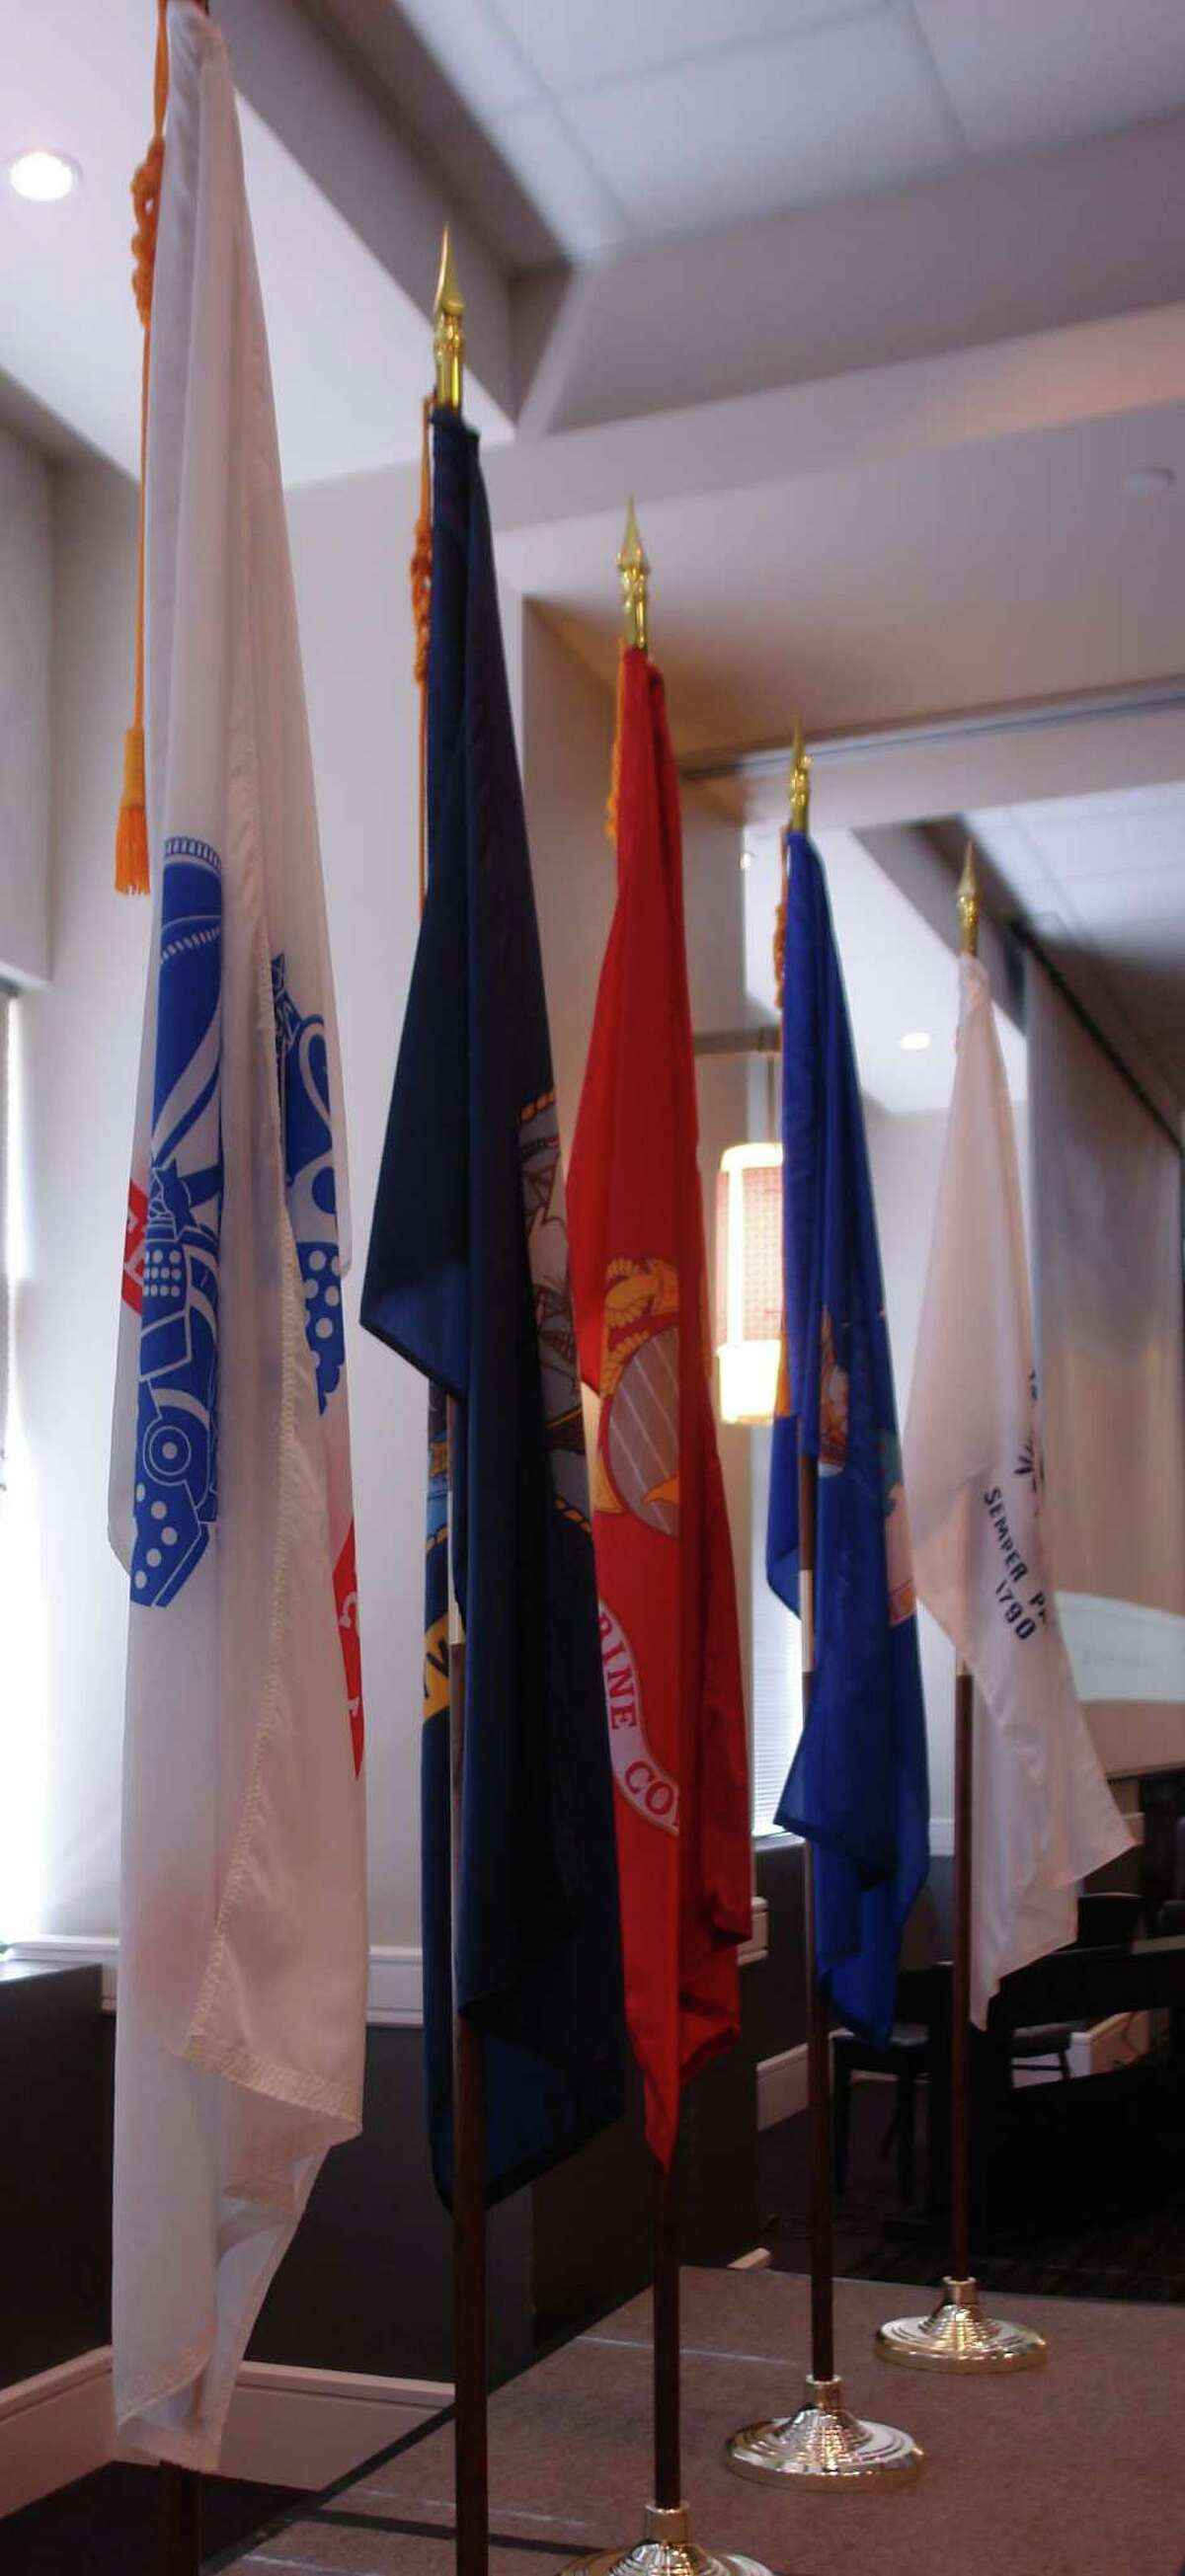 Flags from each branch of the military are displayed on the stage at the Salute to Veterans on Veterans Day on Friday, Nov. 11, at the Norris Convention Center in west Houston.